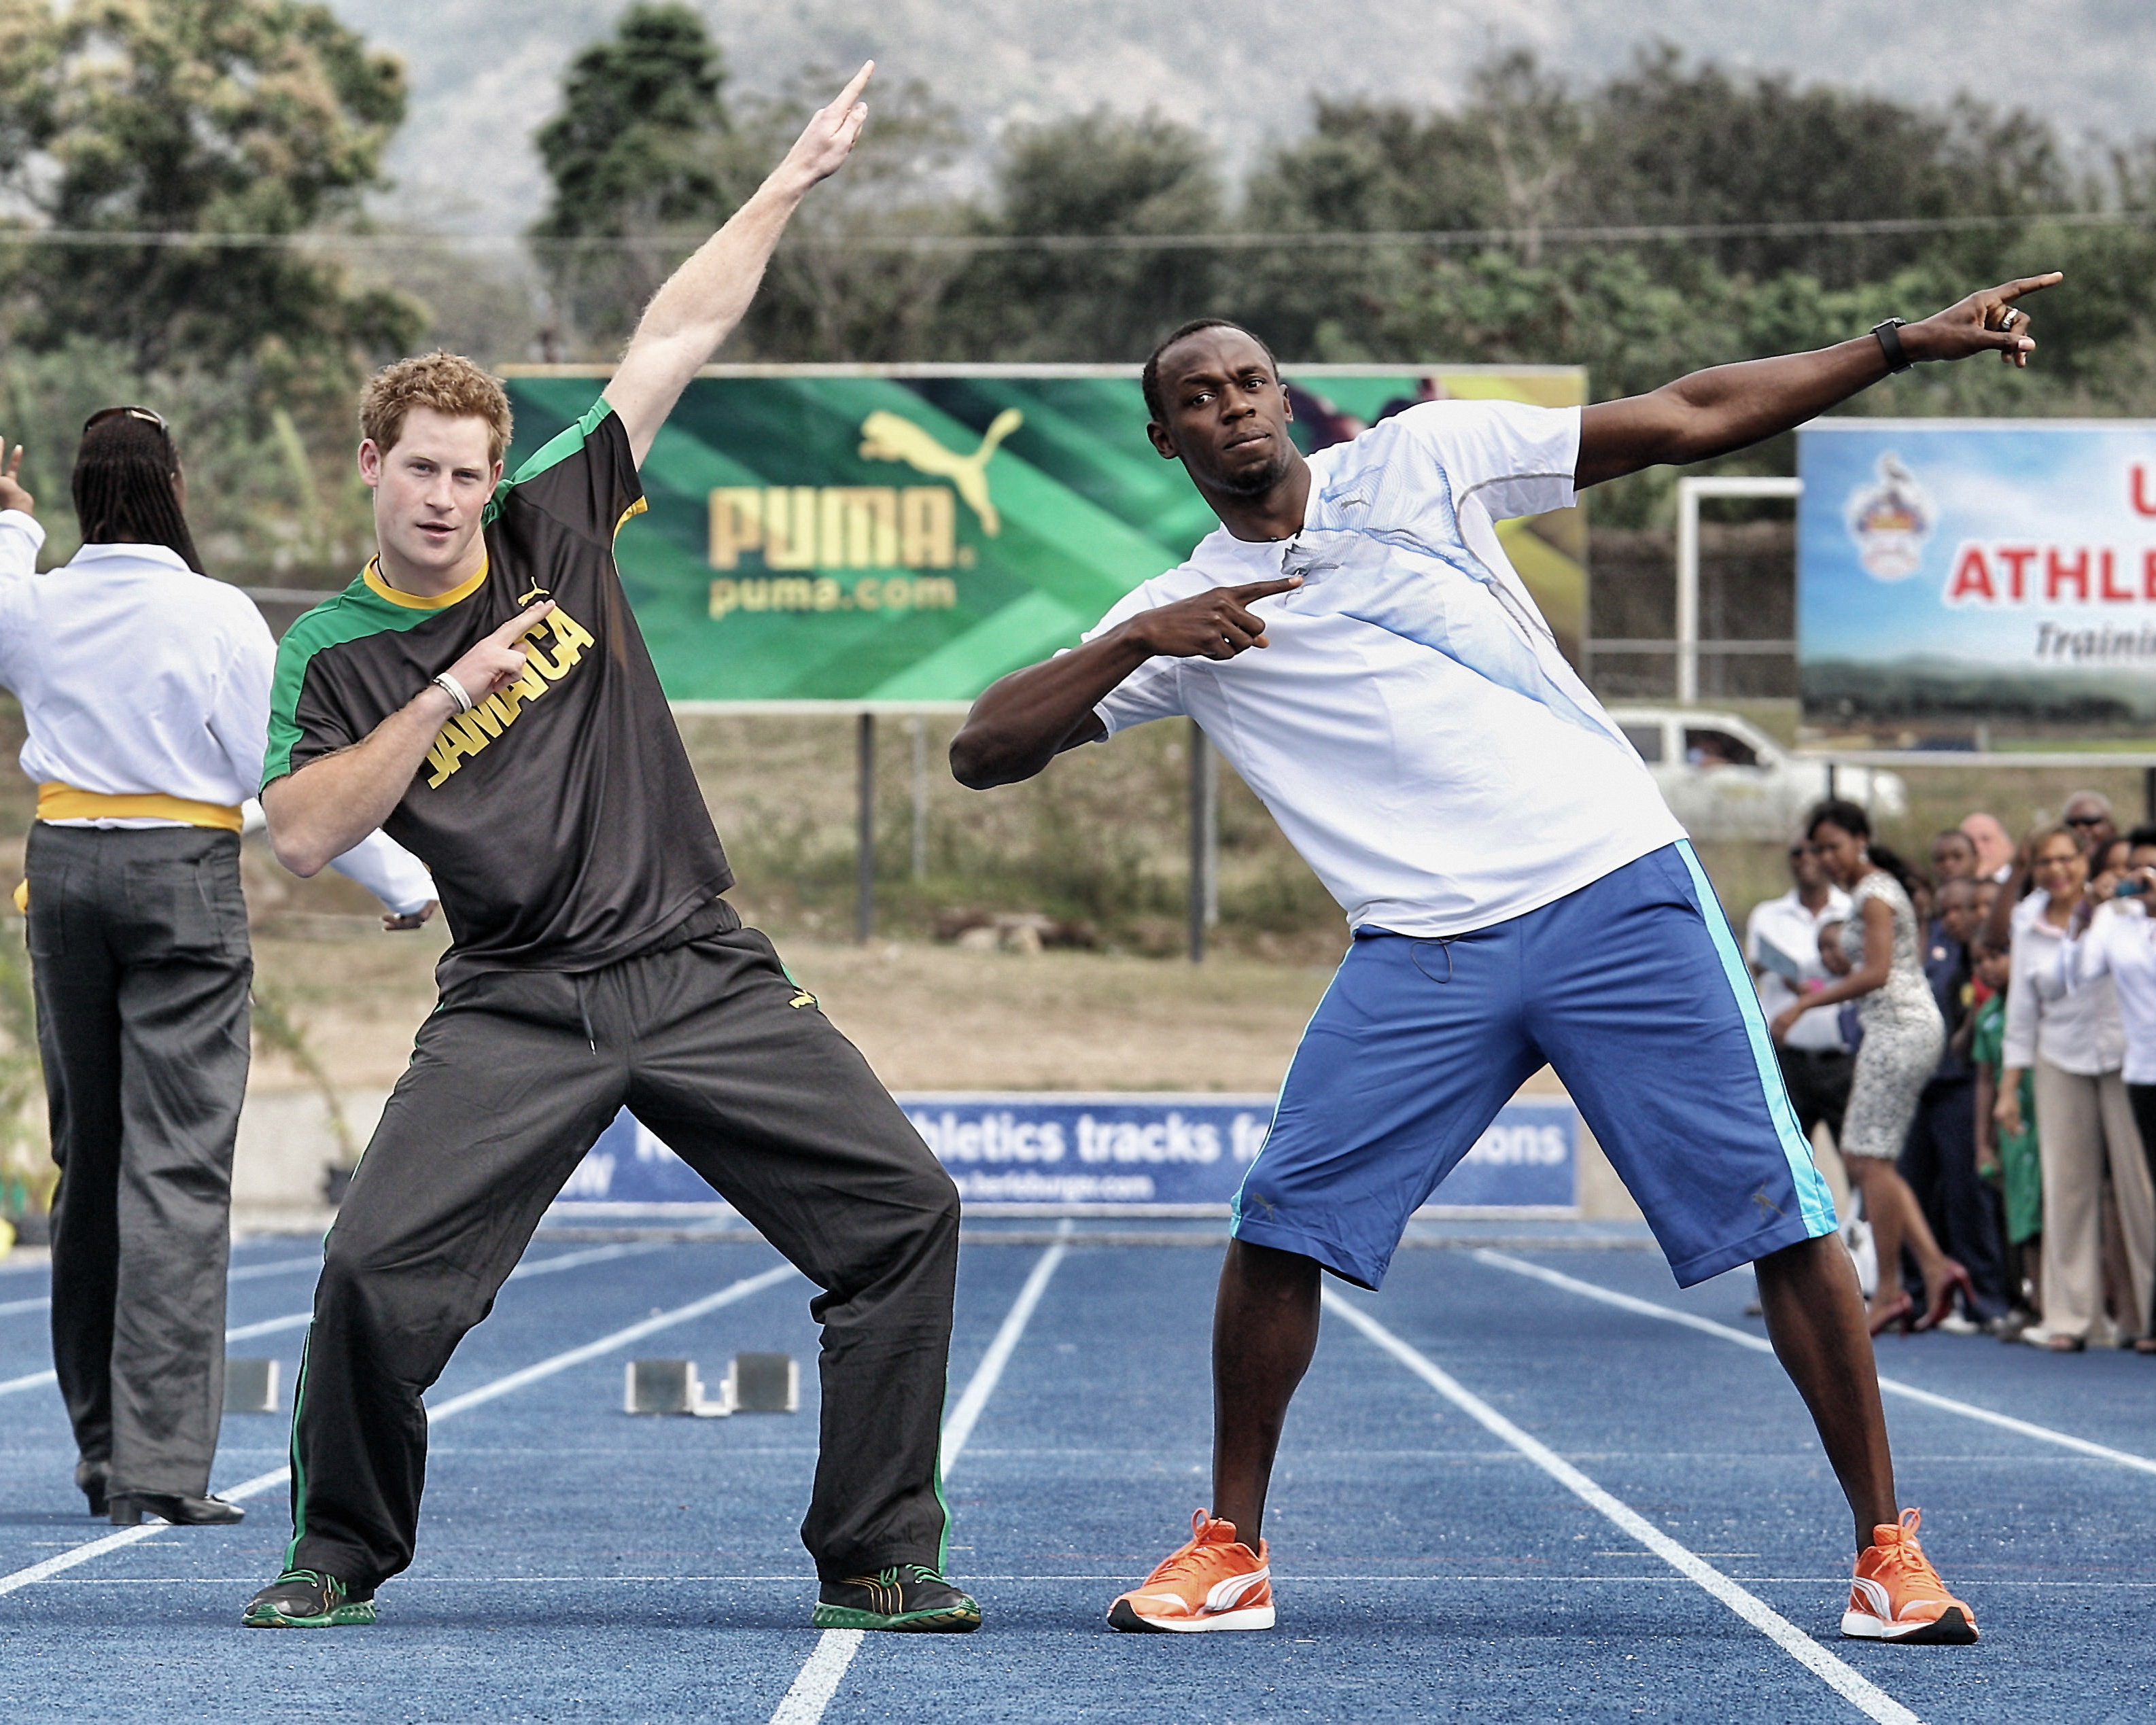 Usain Bolt and Prince Harry doing the lightning bolt